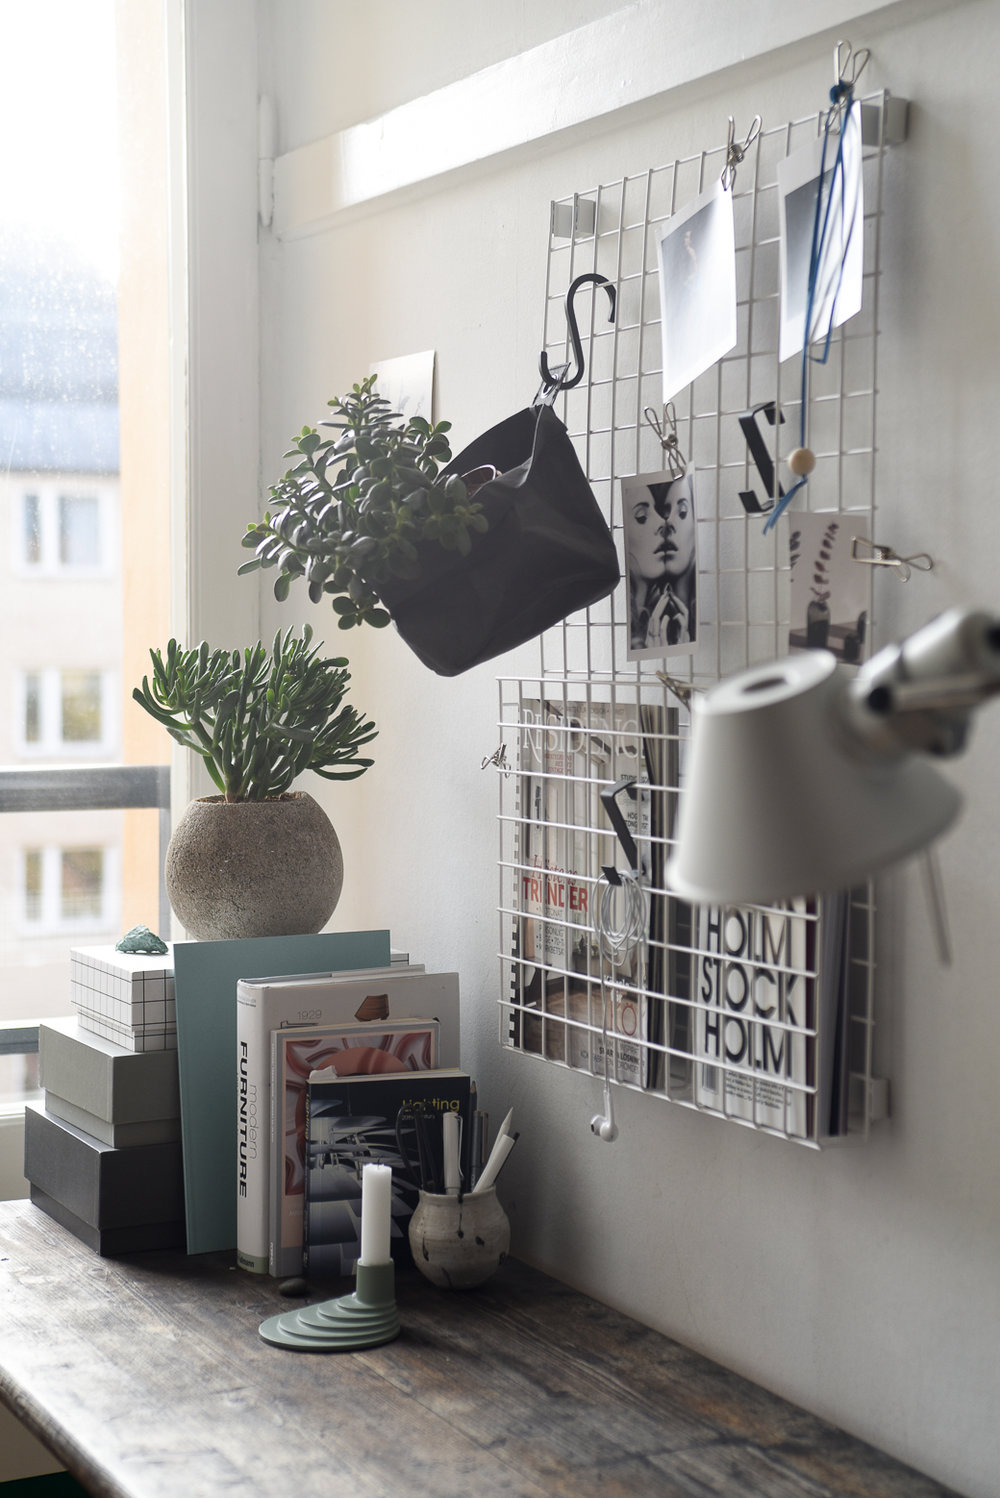 Every day Swedish Design in the home-grid storage + ypperlig candle holder.jpg